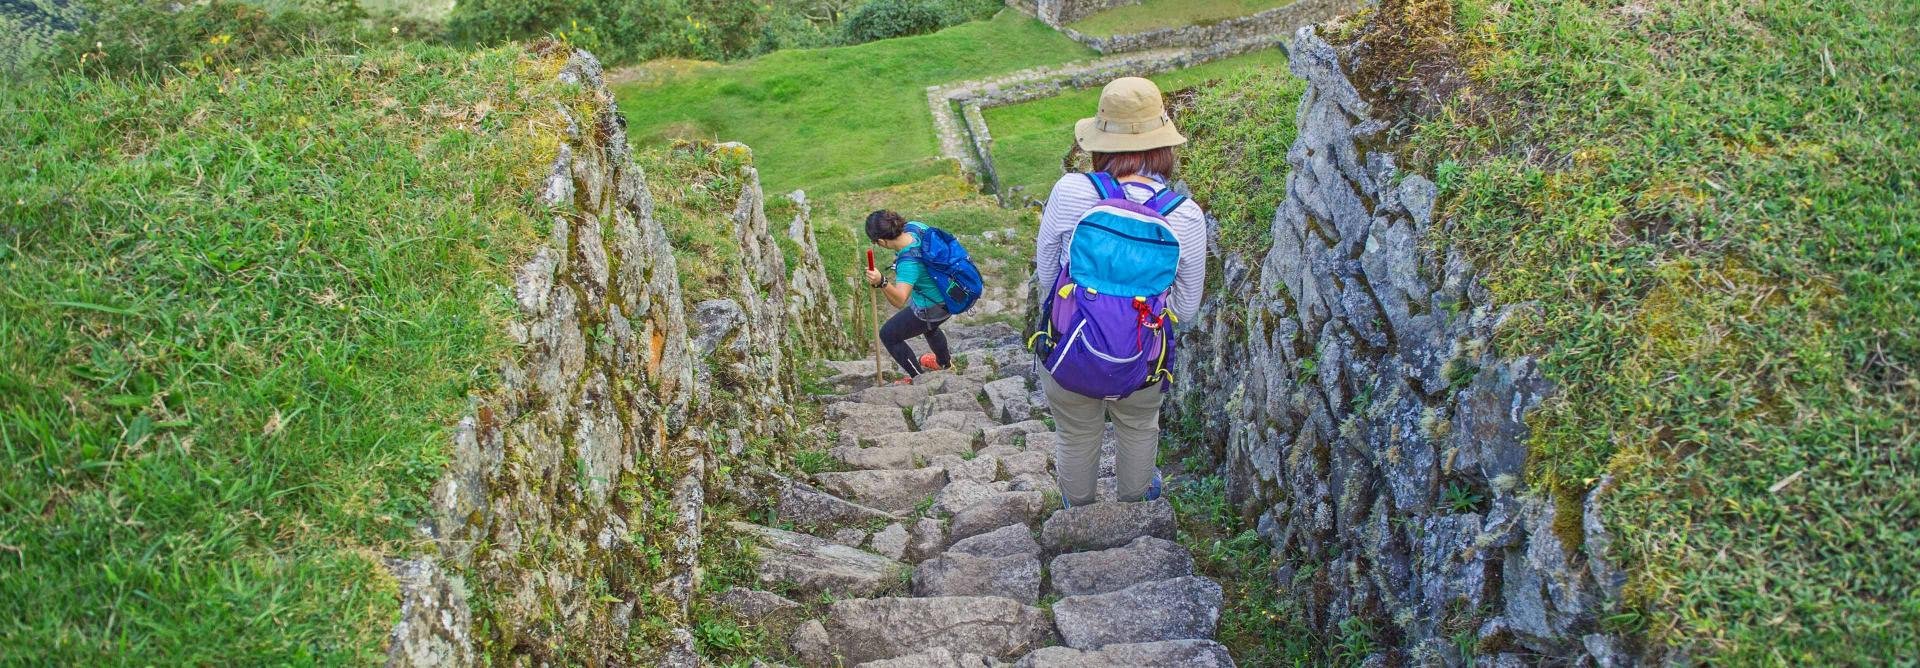 Inca Trail charity Trek in Peru to Machu Picchu